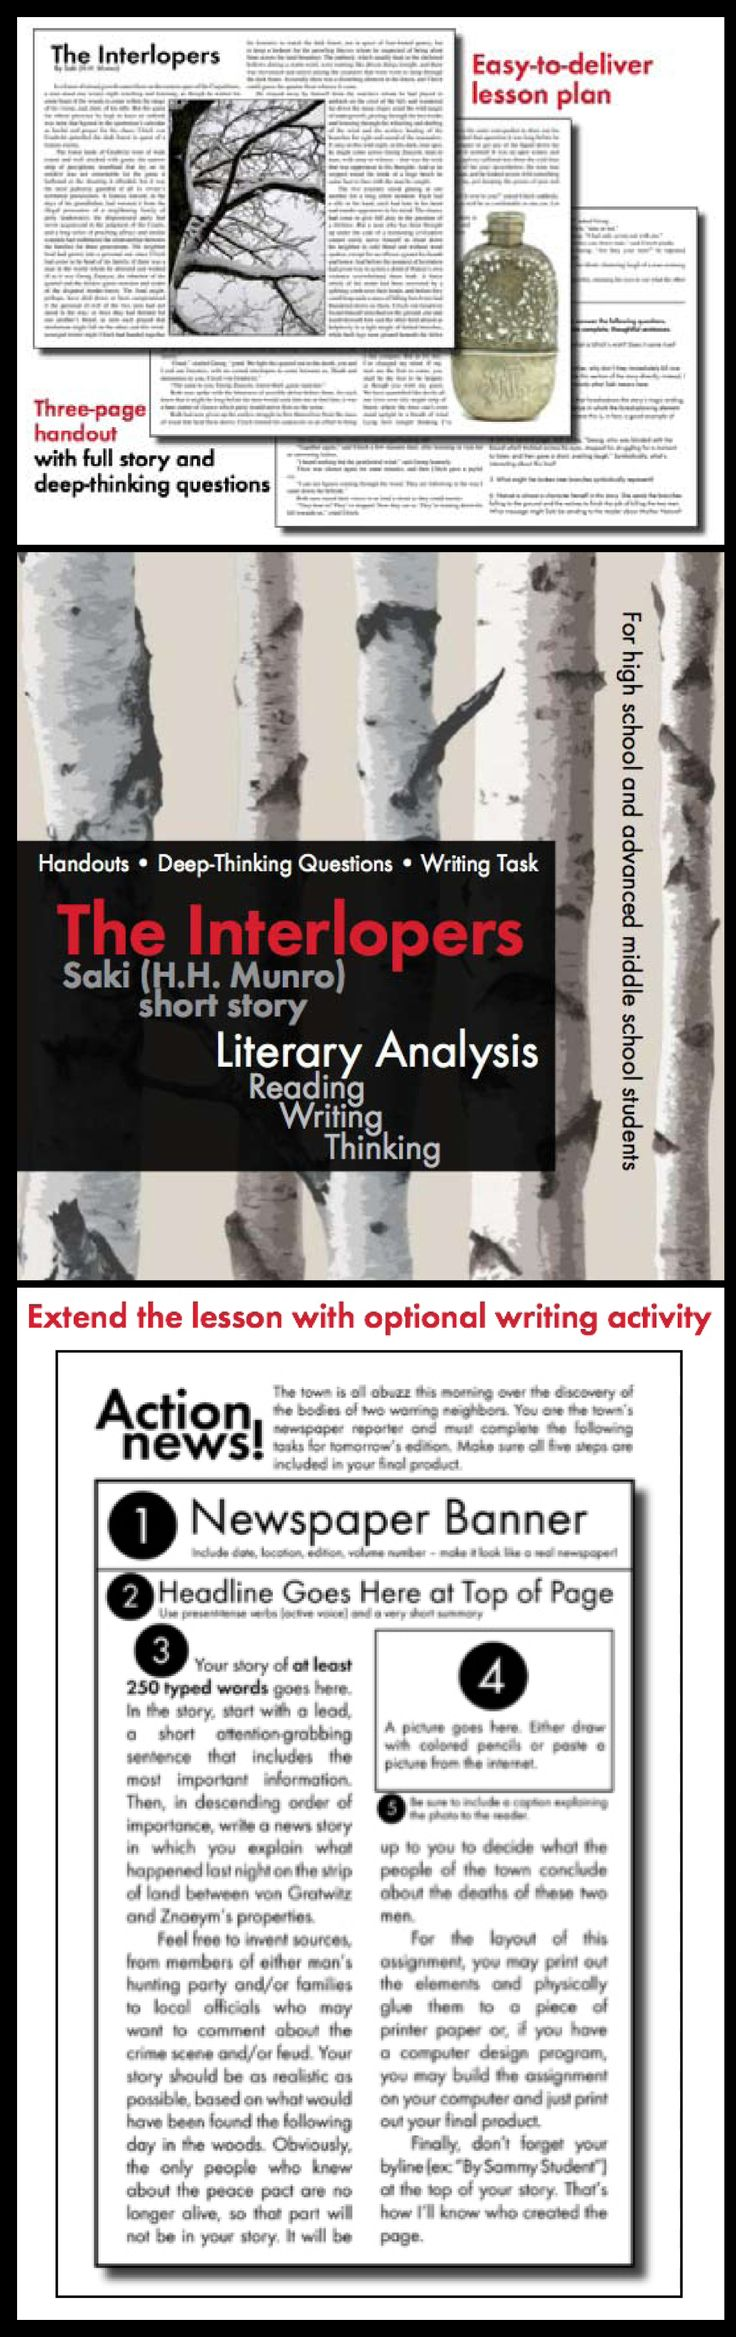 the interlopers essay the interlopers essay more top essay interlopers essay prompt the best